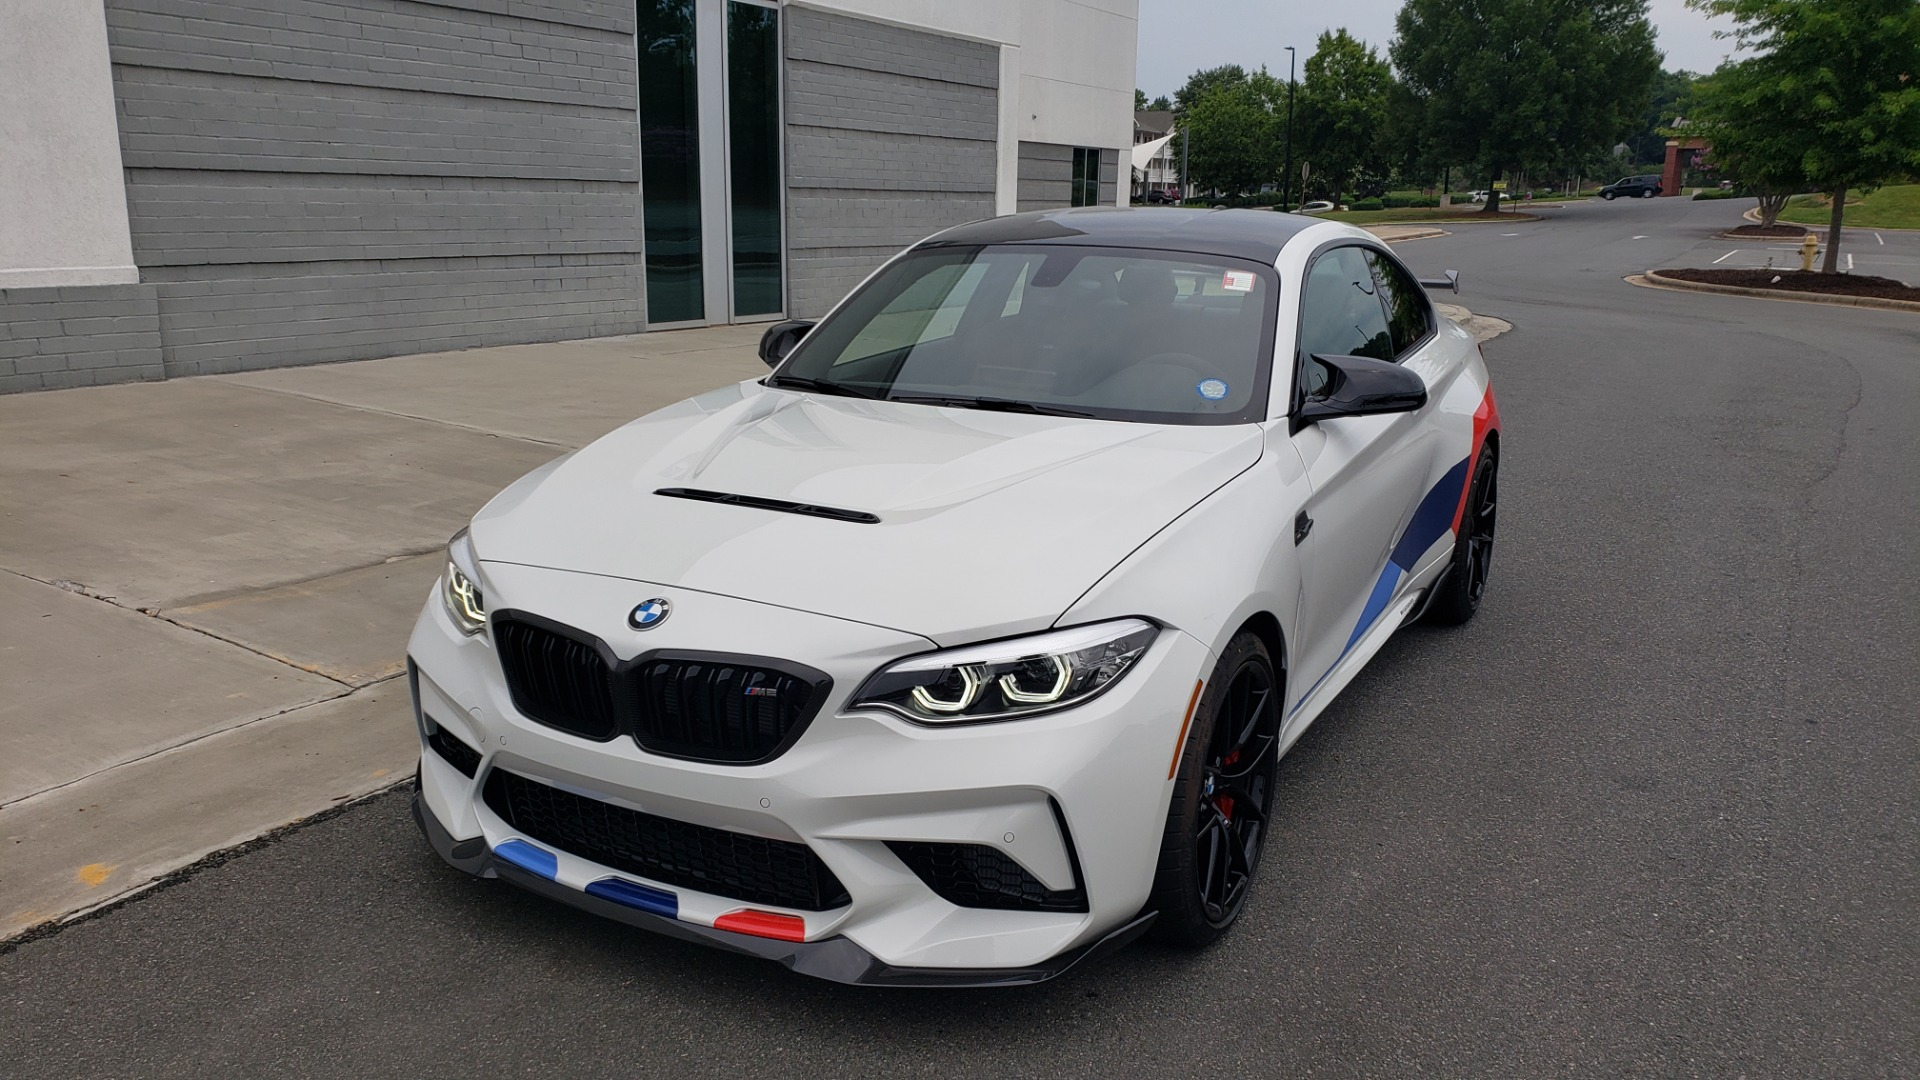 Used 2020 BMW M2 CS COMPETITION 405HP / COUPE / MANUAL / NAV / H/K SOUND / REARVIEW for sale $105,995 at Formula Imports in Charlotte NC 28227 2